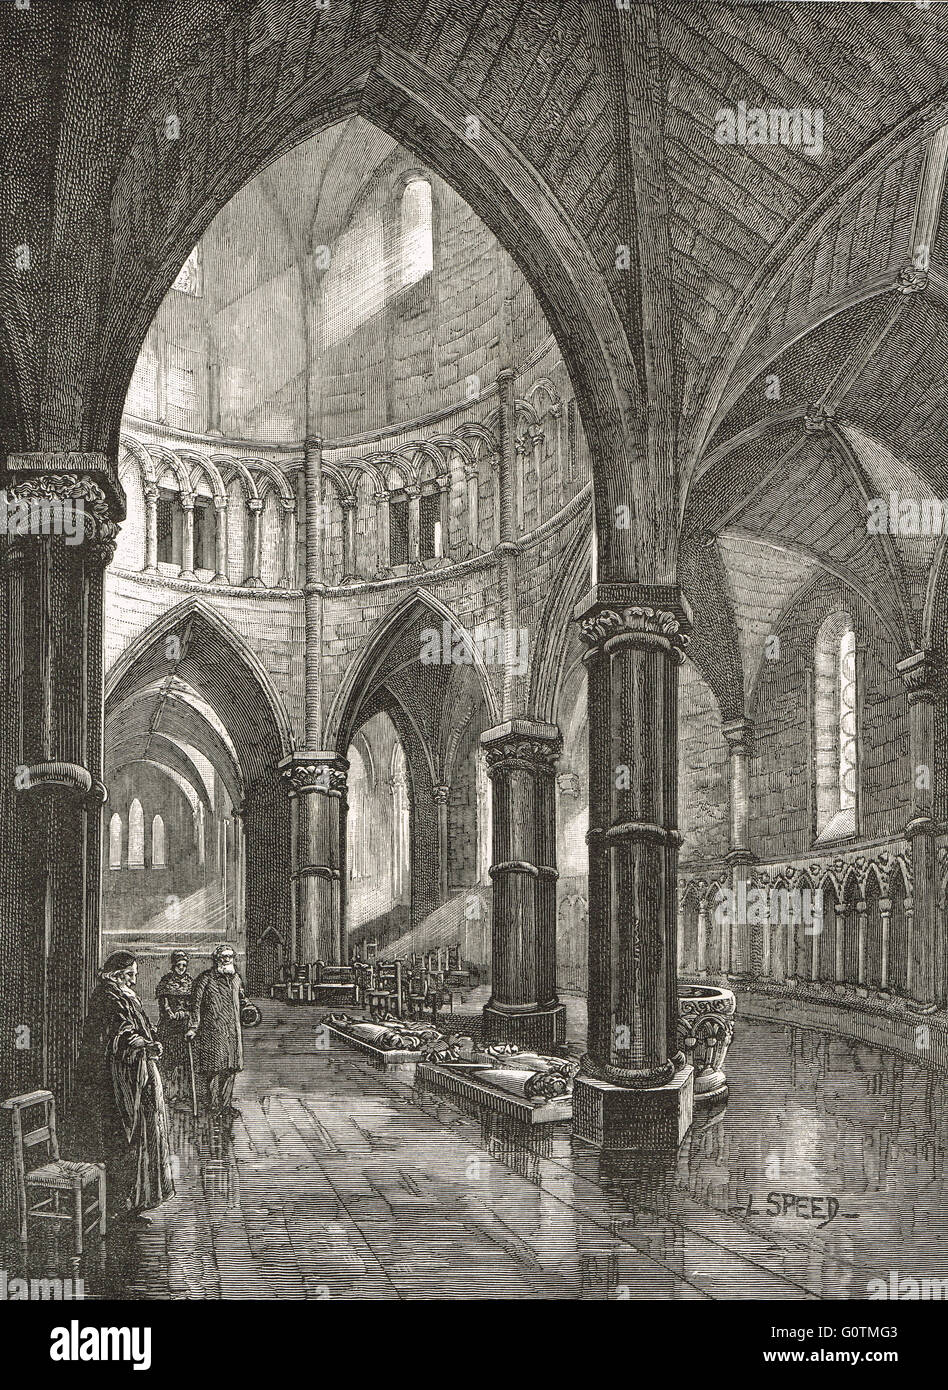 Interior of Temple Church, London in the 19th Century - Stock Image